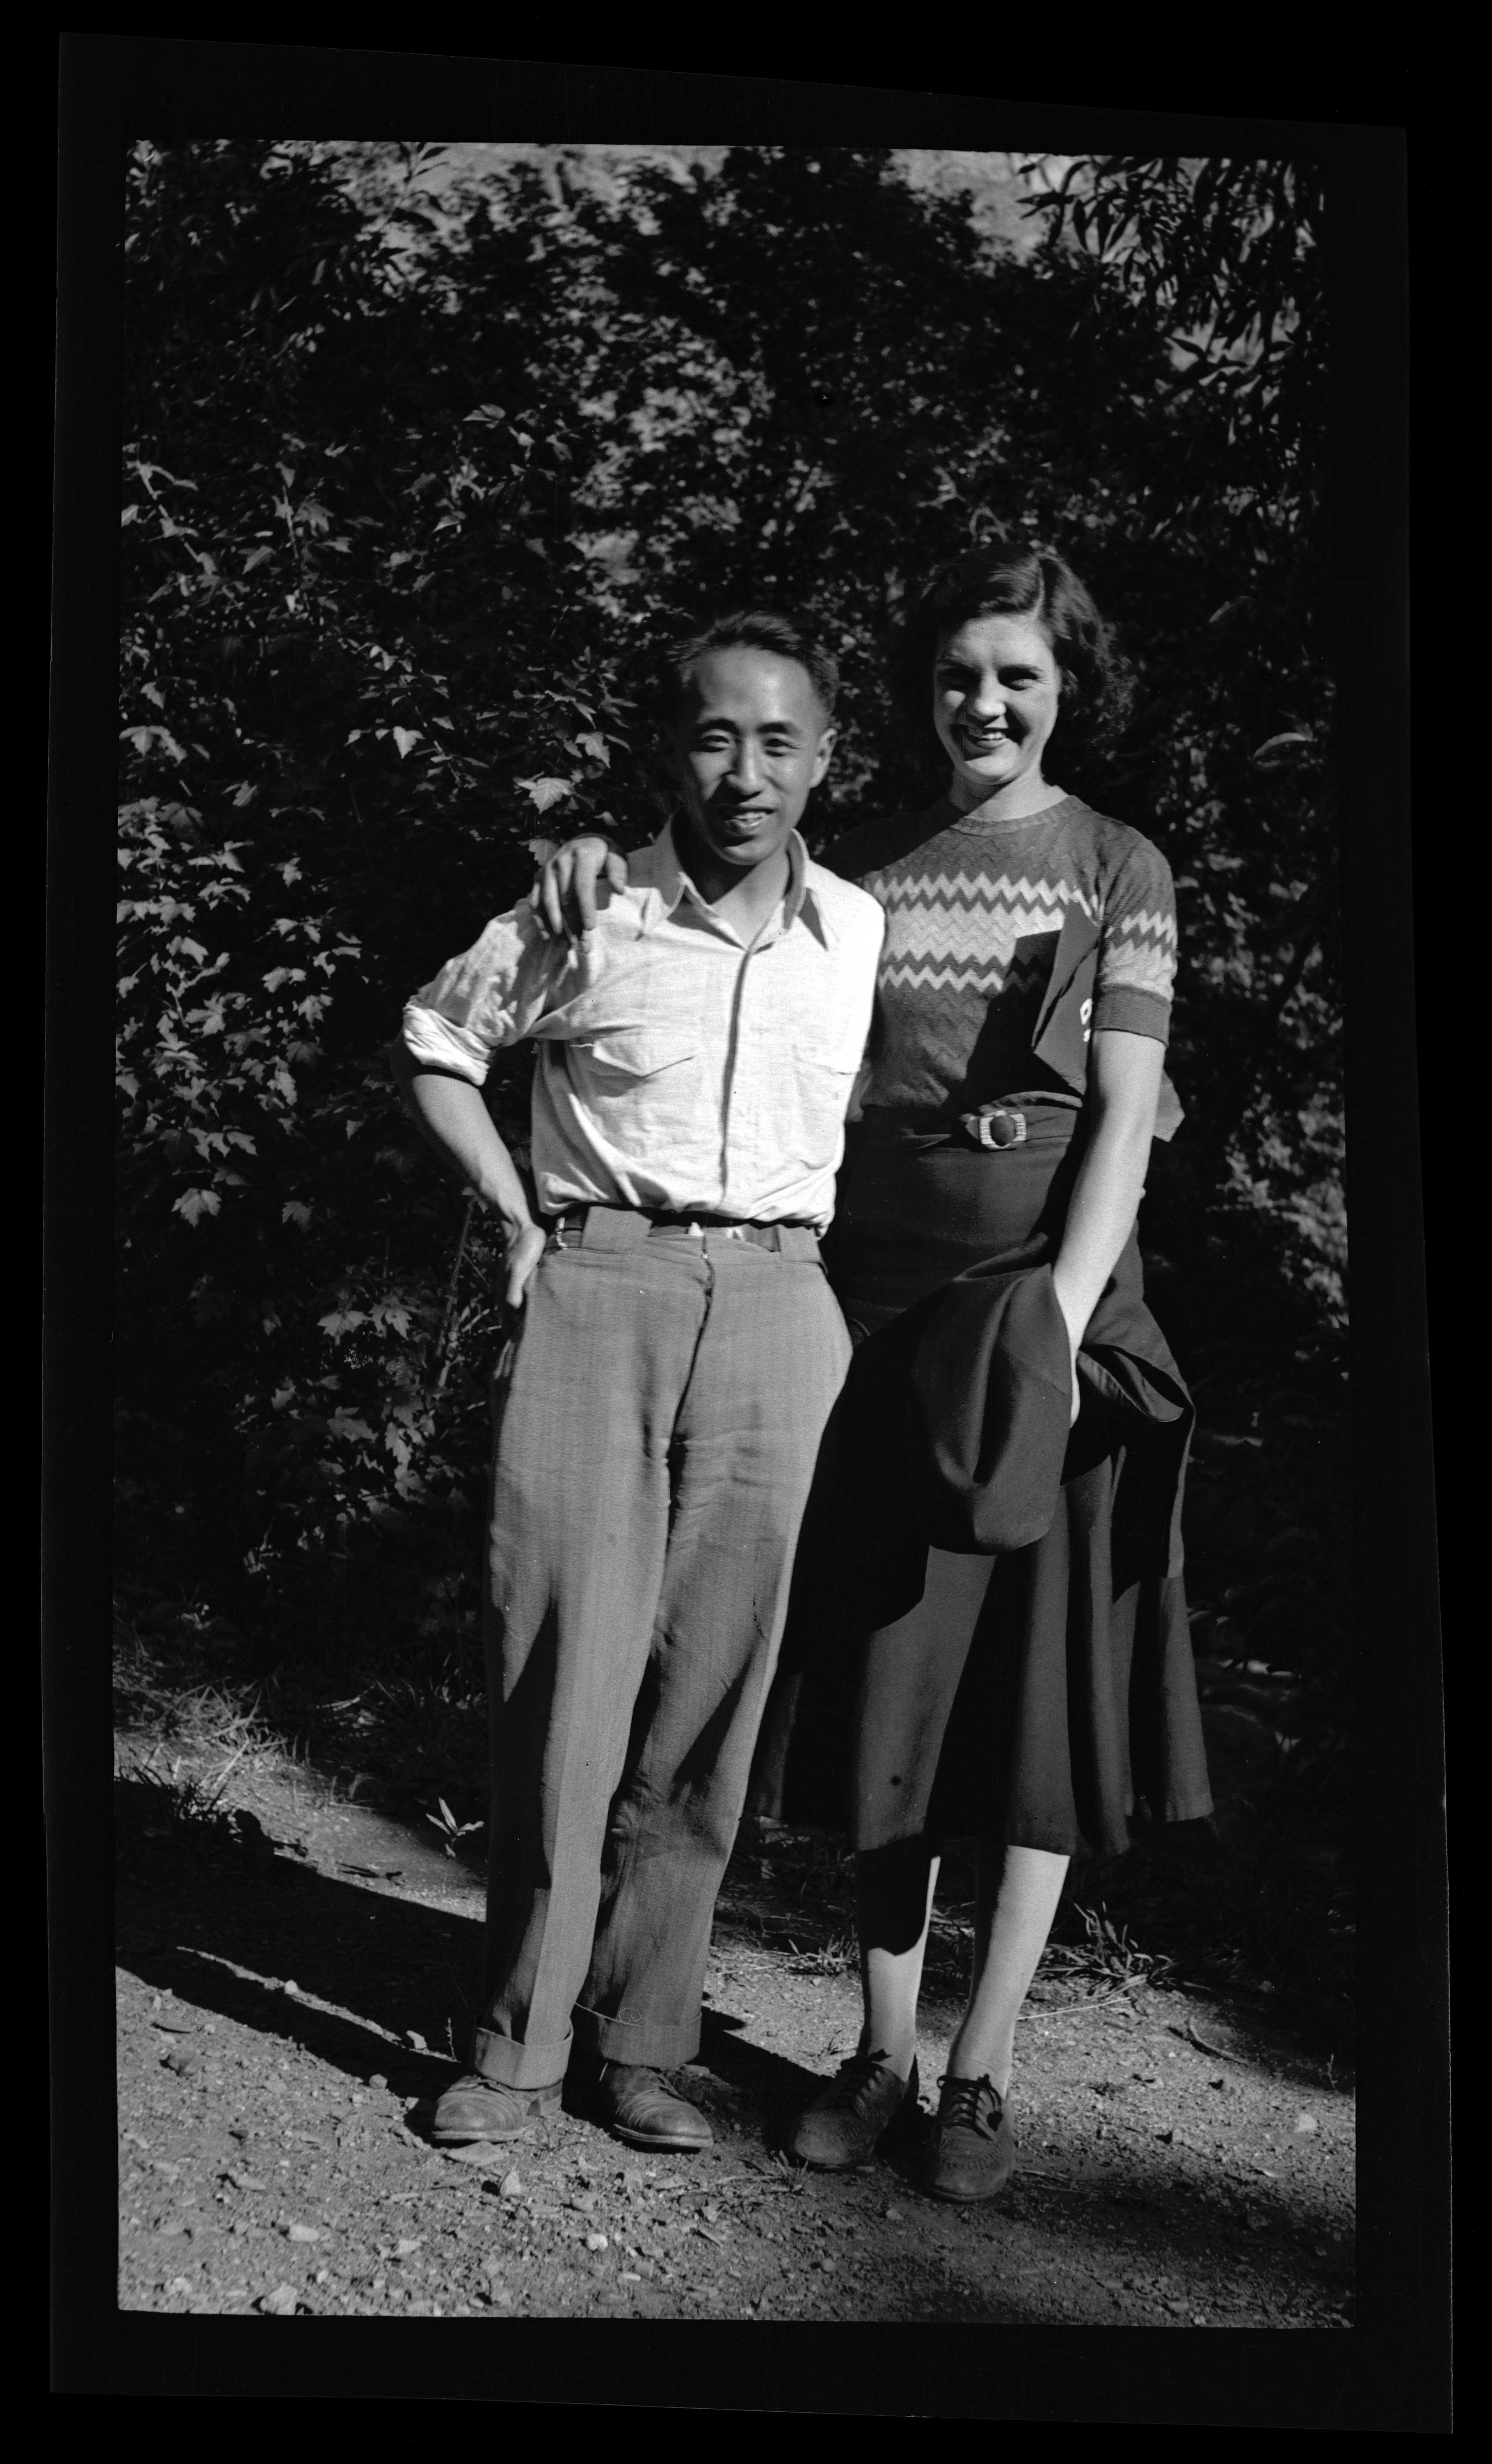 Snapshot of man and woman posing, trees in background, 1932. Individuals from Provo Internation Society of Christian Endeavor retreat